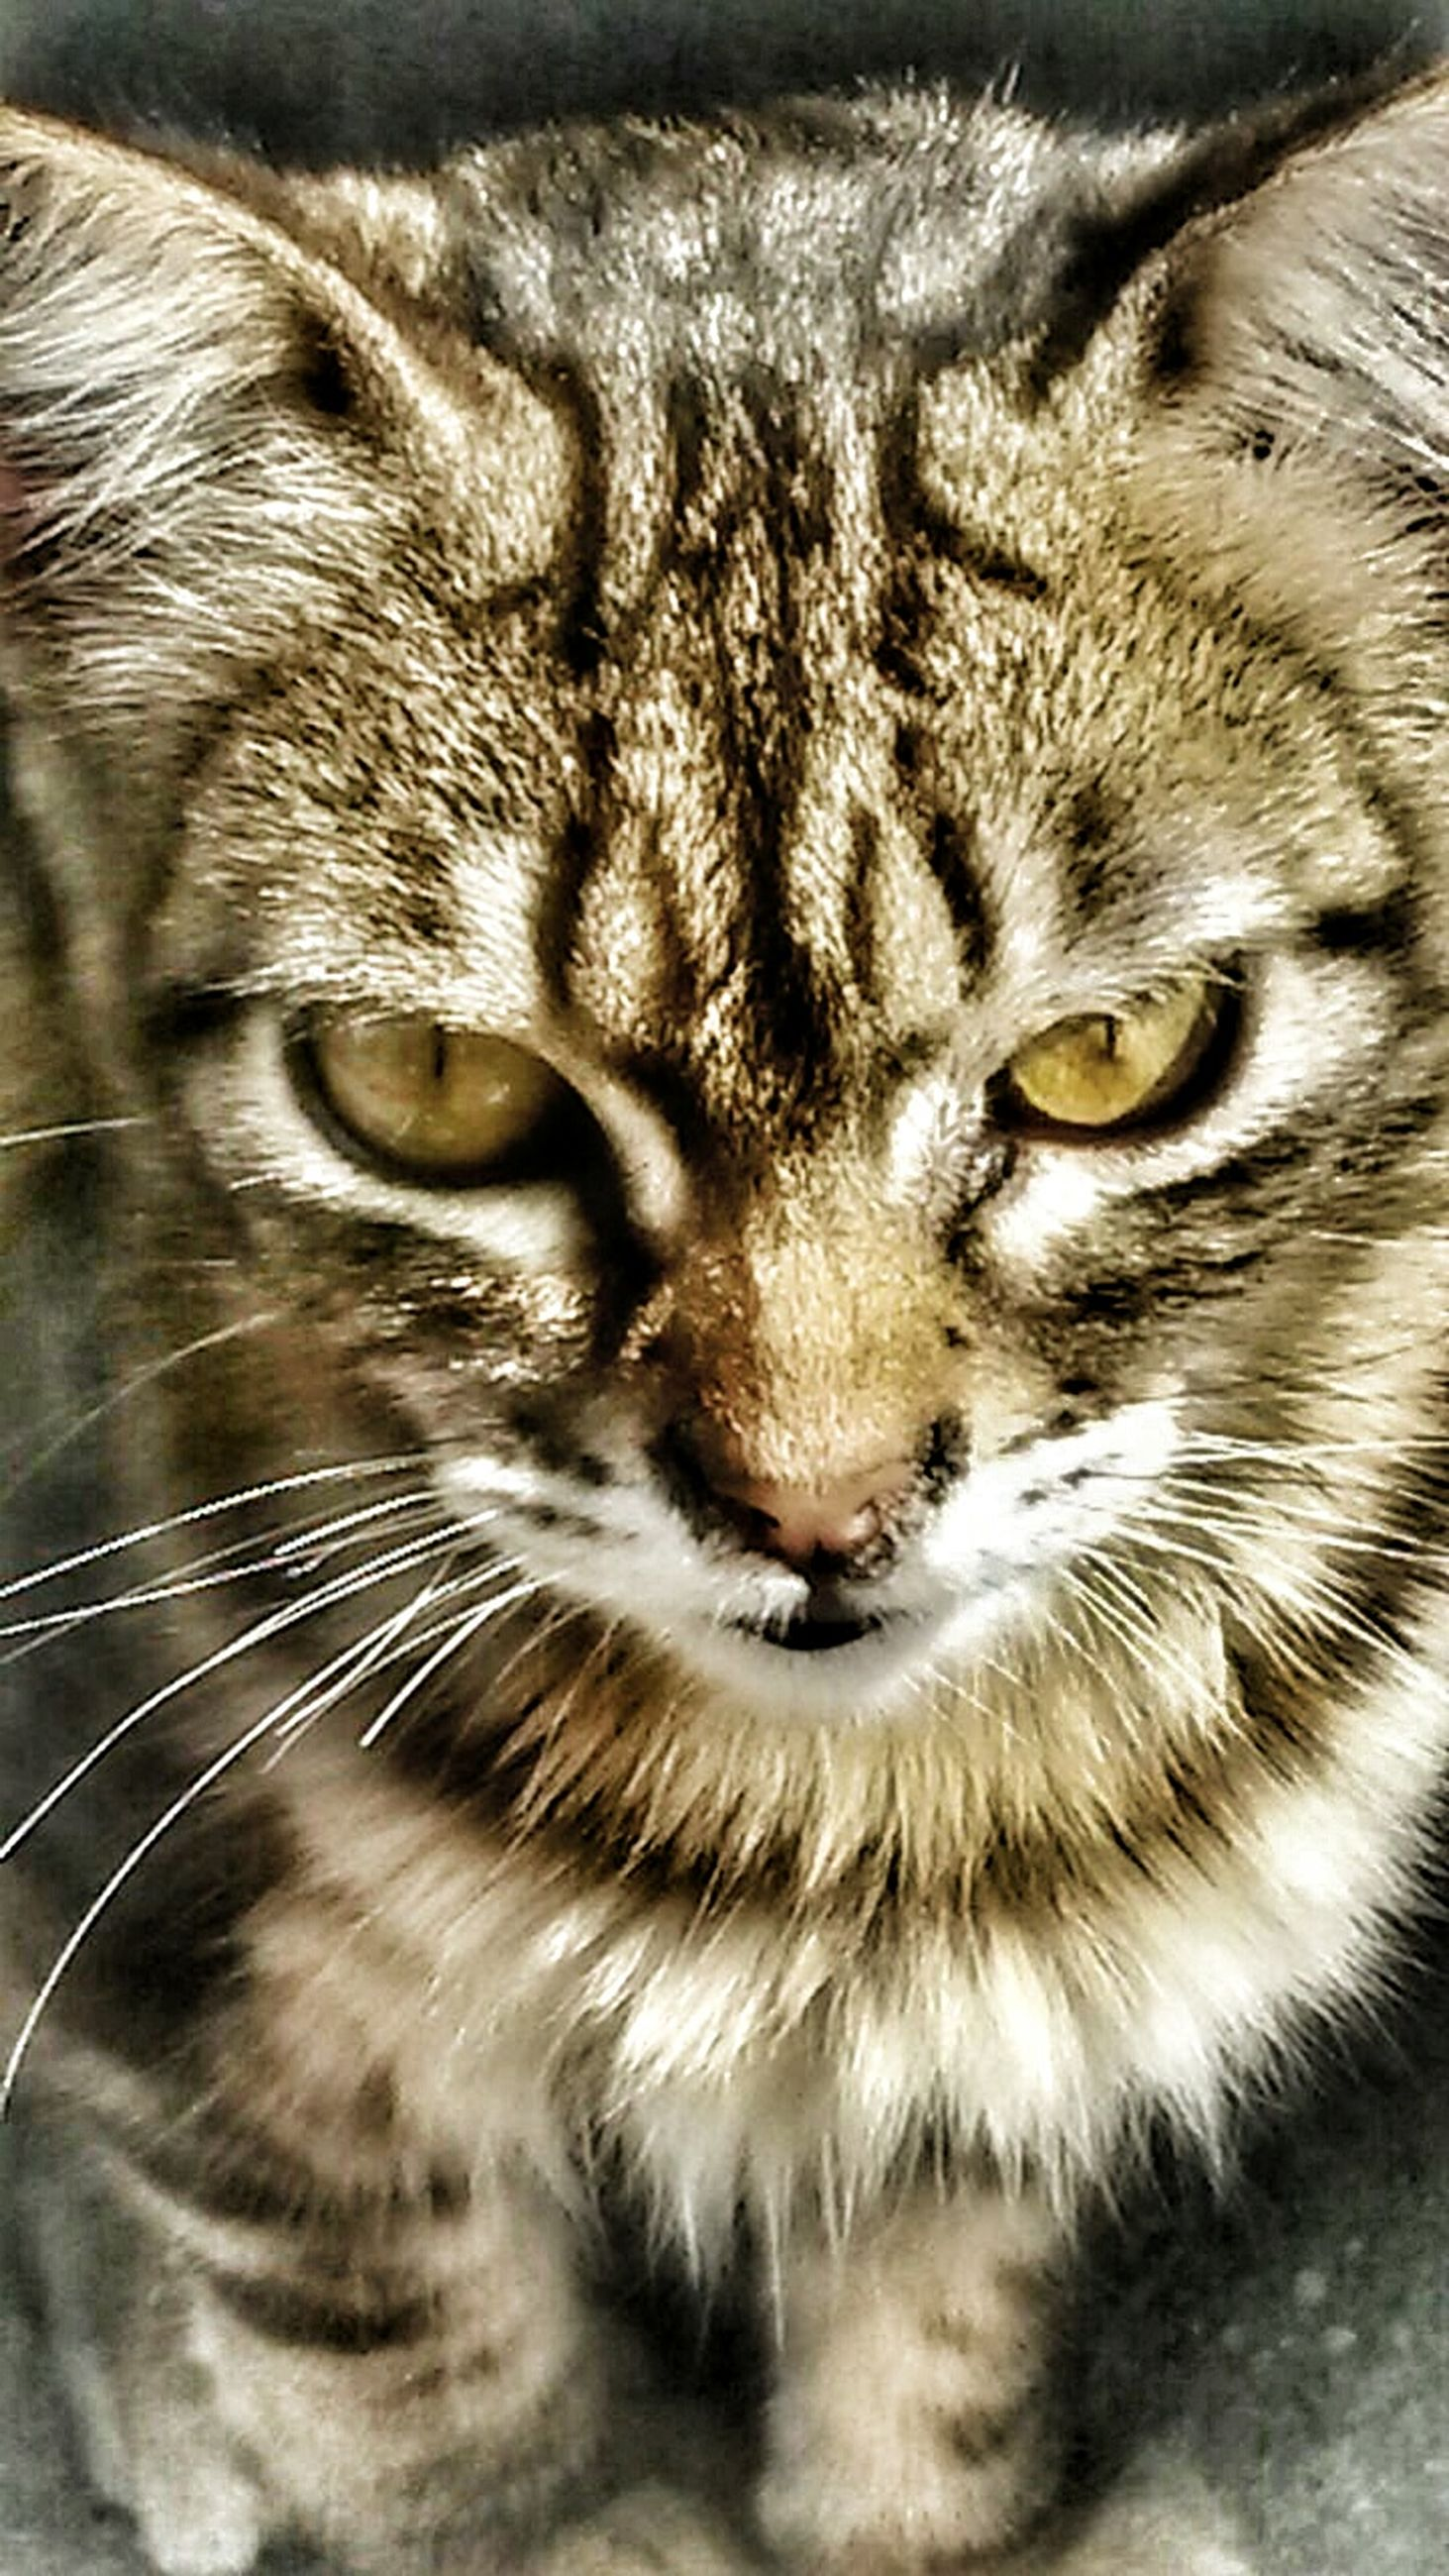 one animal, animal themes, pets, domestic cat, domestic animals, cat, whisker, mammal, feline, animal head, close-up, portrait, animal eye, looking at camera, animal body part, indoors, staring, snout, front view